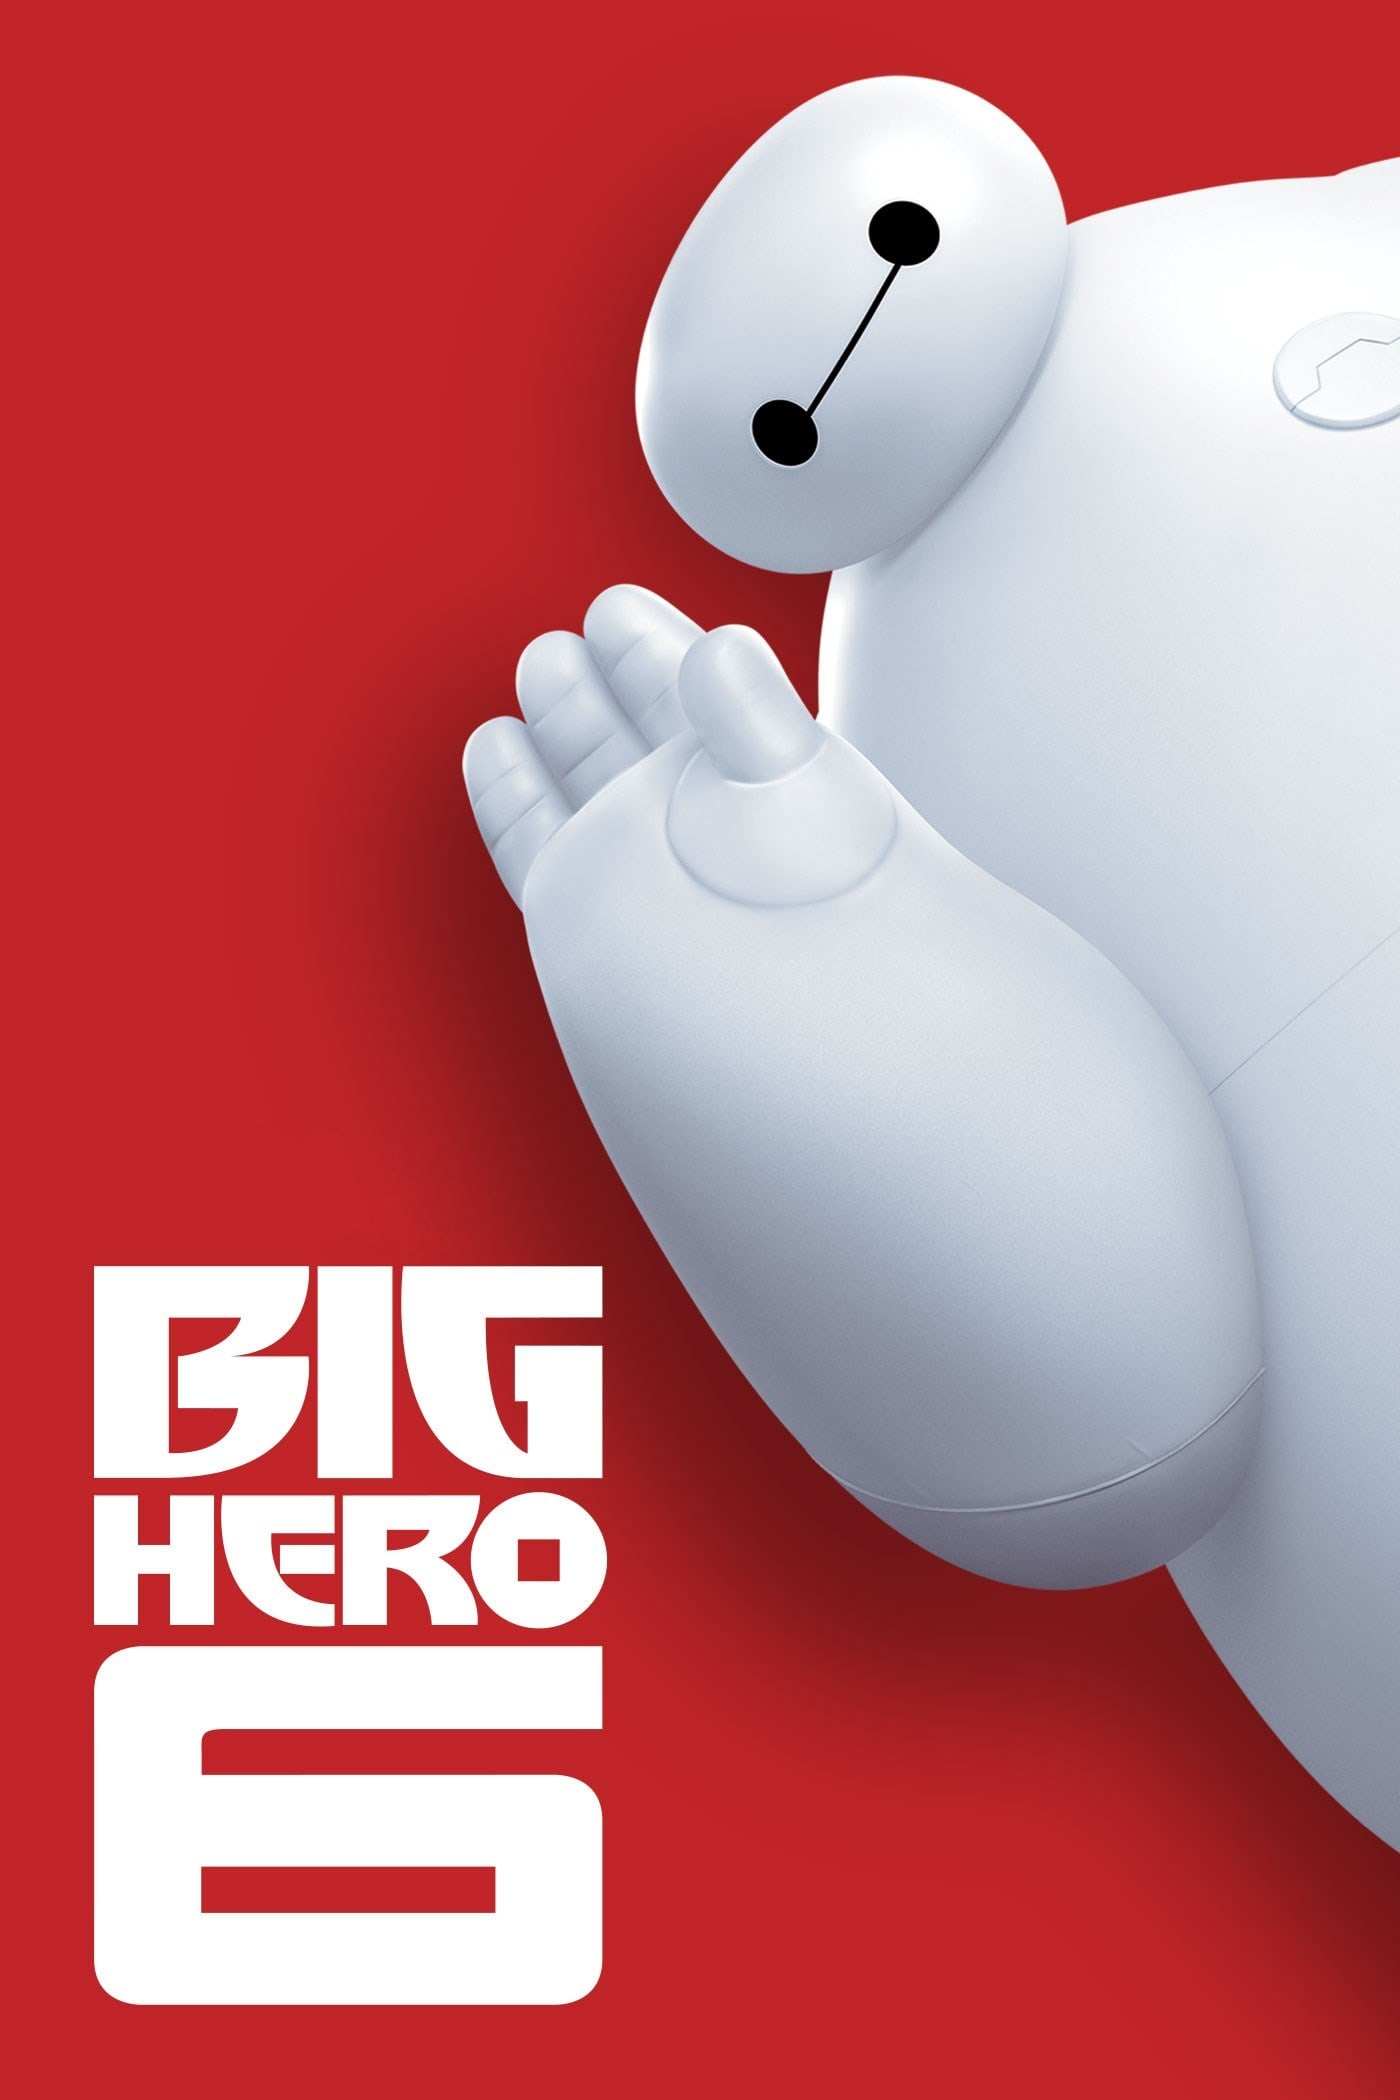 Big Hero 6 For mobile